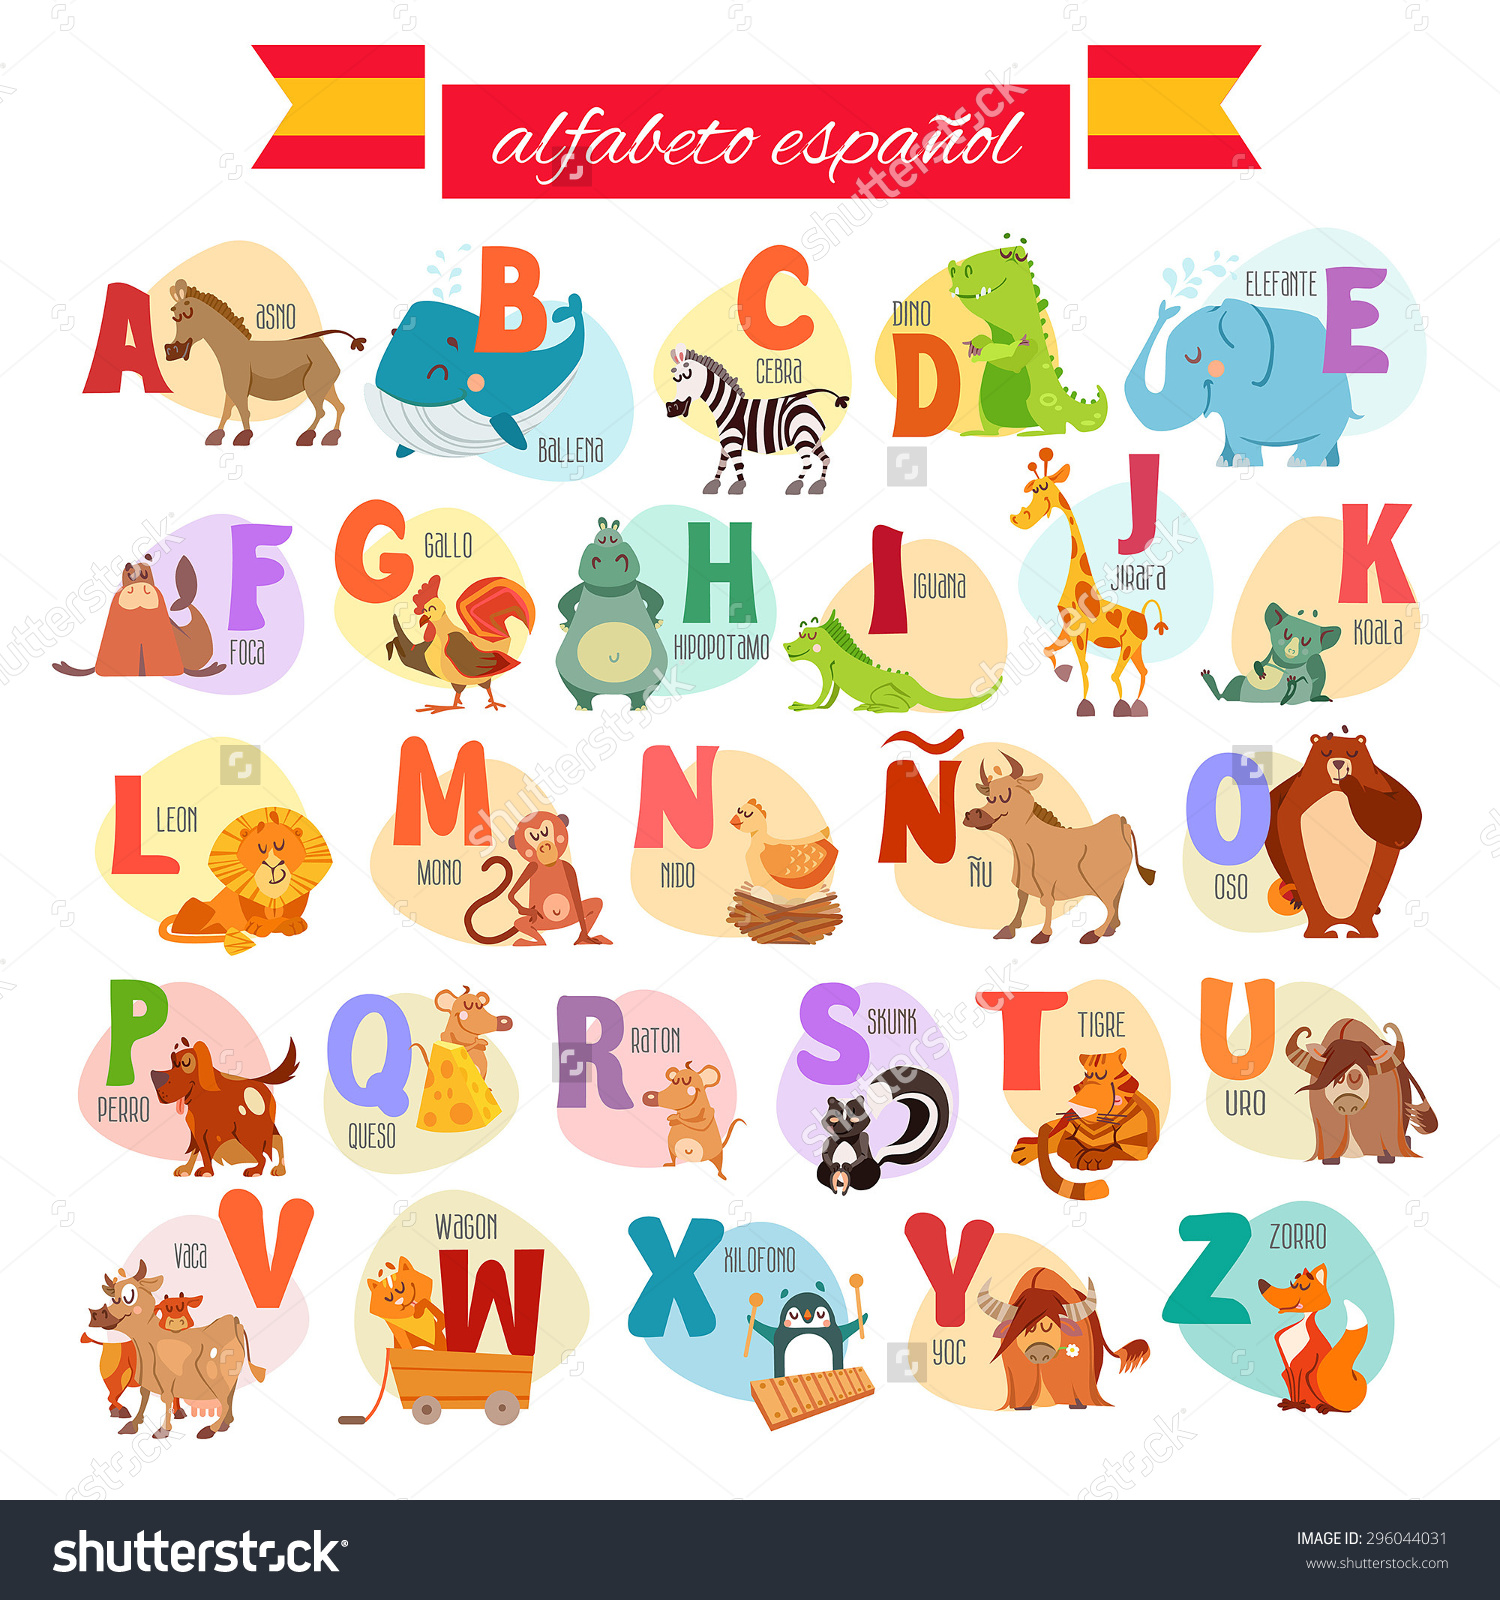 Cute Cartoon Spanish Illustrated Alphabet Animals Stock Vector.